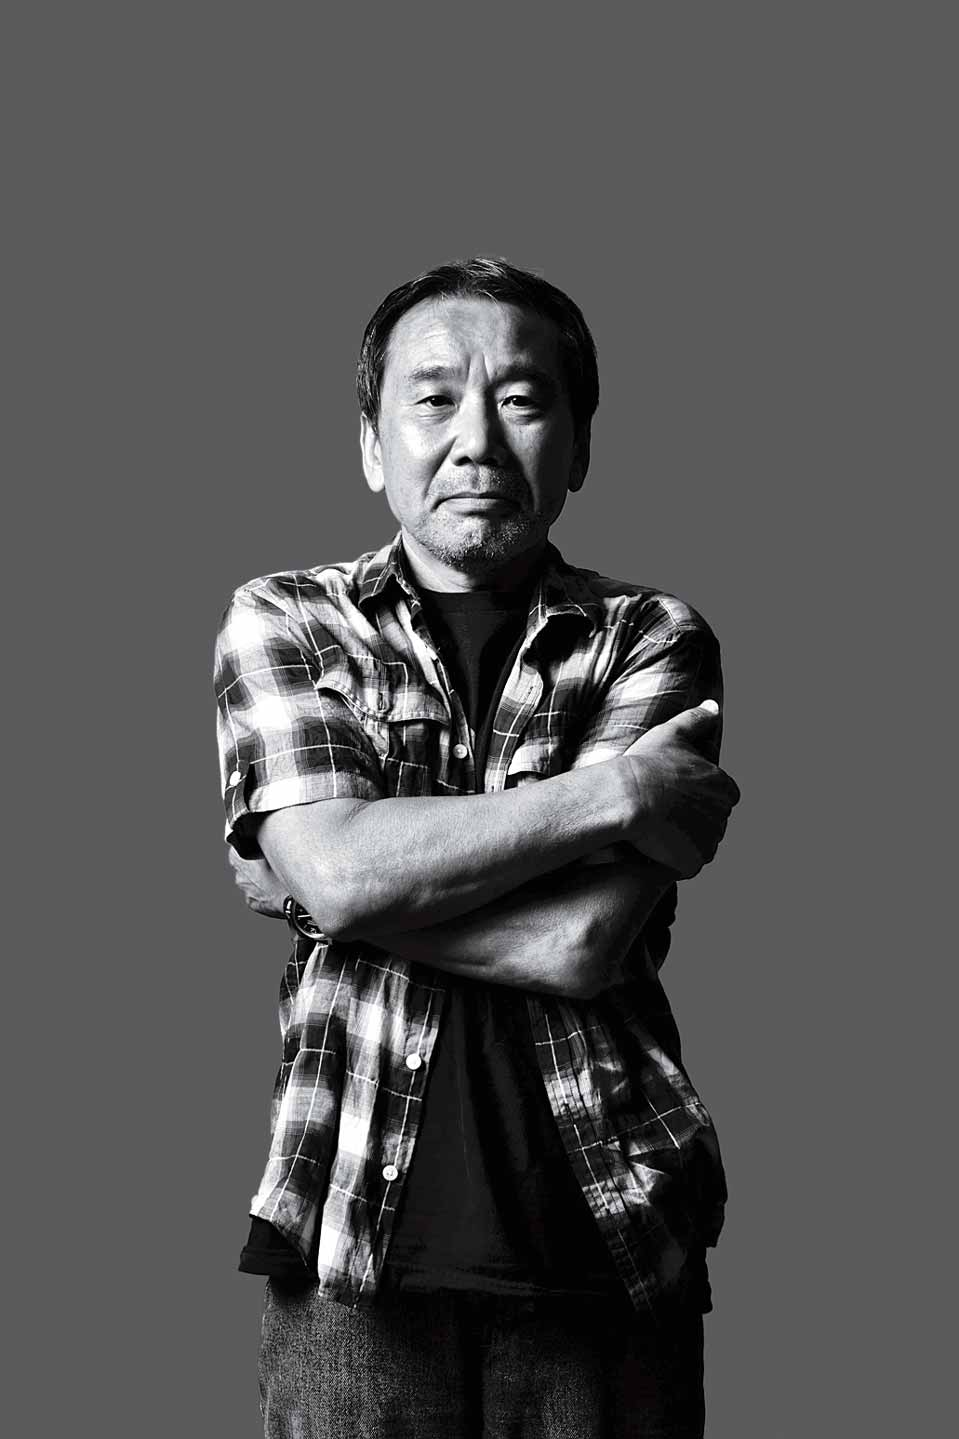 Murakami specializes in passive, aimless, nihilistic protagonists